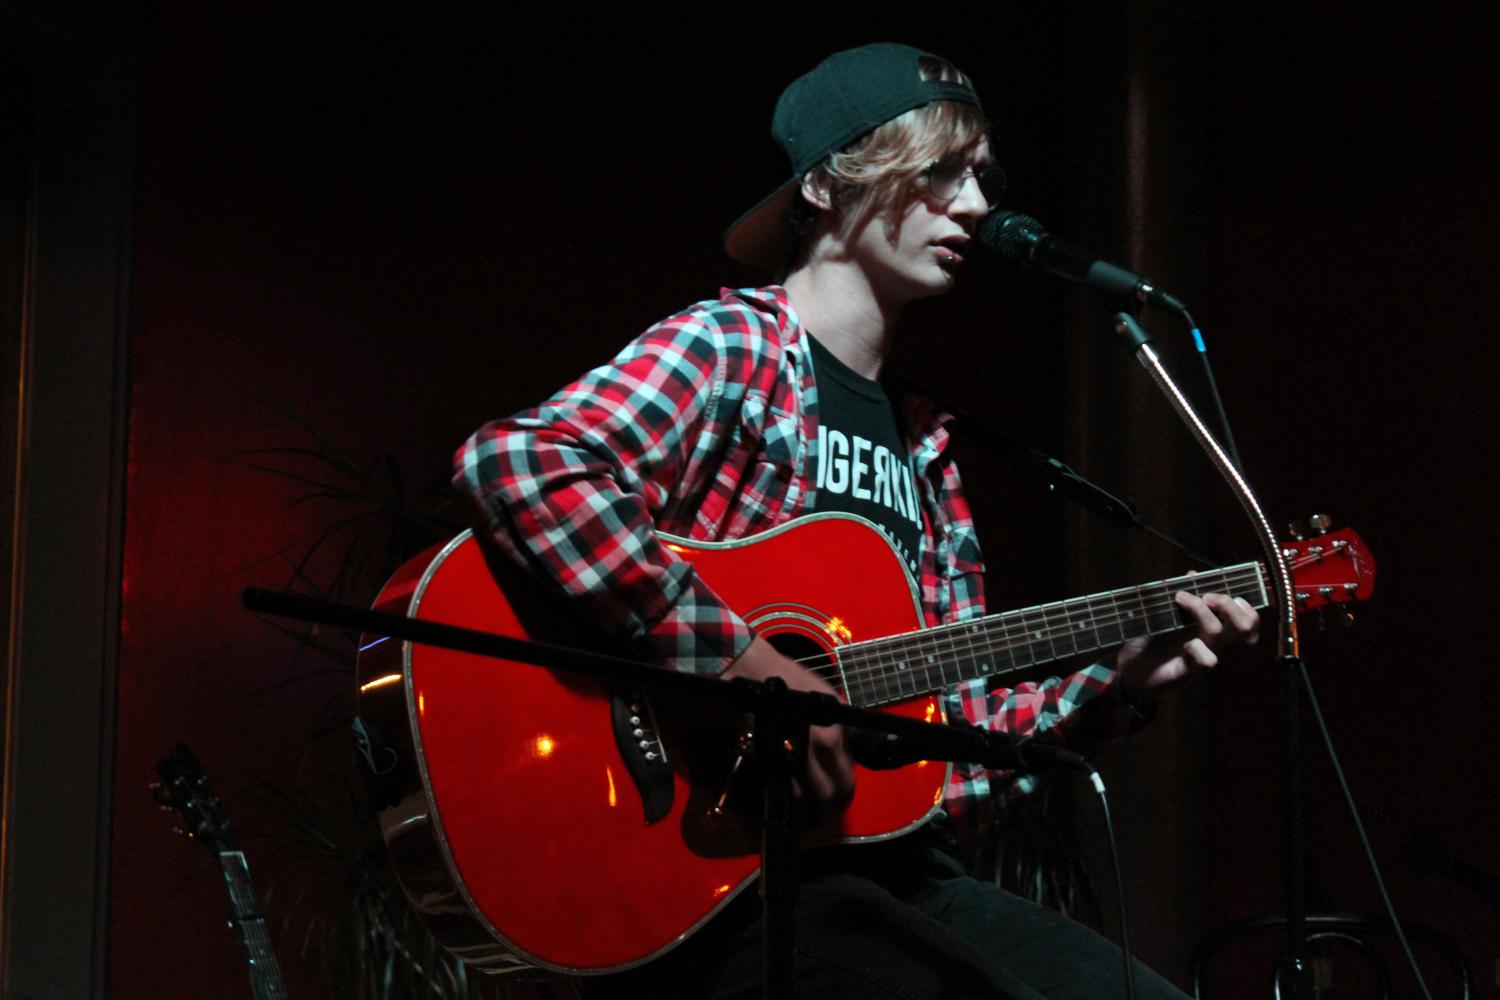 """Former North Platte High School student Koty DeCent is a regular at The Espresso Shoppe's open mic night. He usually performs covers of songs from alternative bands, but he also sings his own original songs sometimes. """"My motivation would be the audience. Just seeing their faces gets me pumped to perform,"""" said DeCent."""